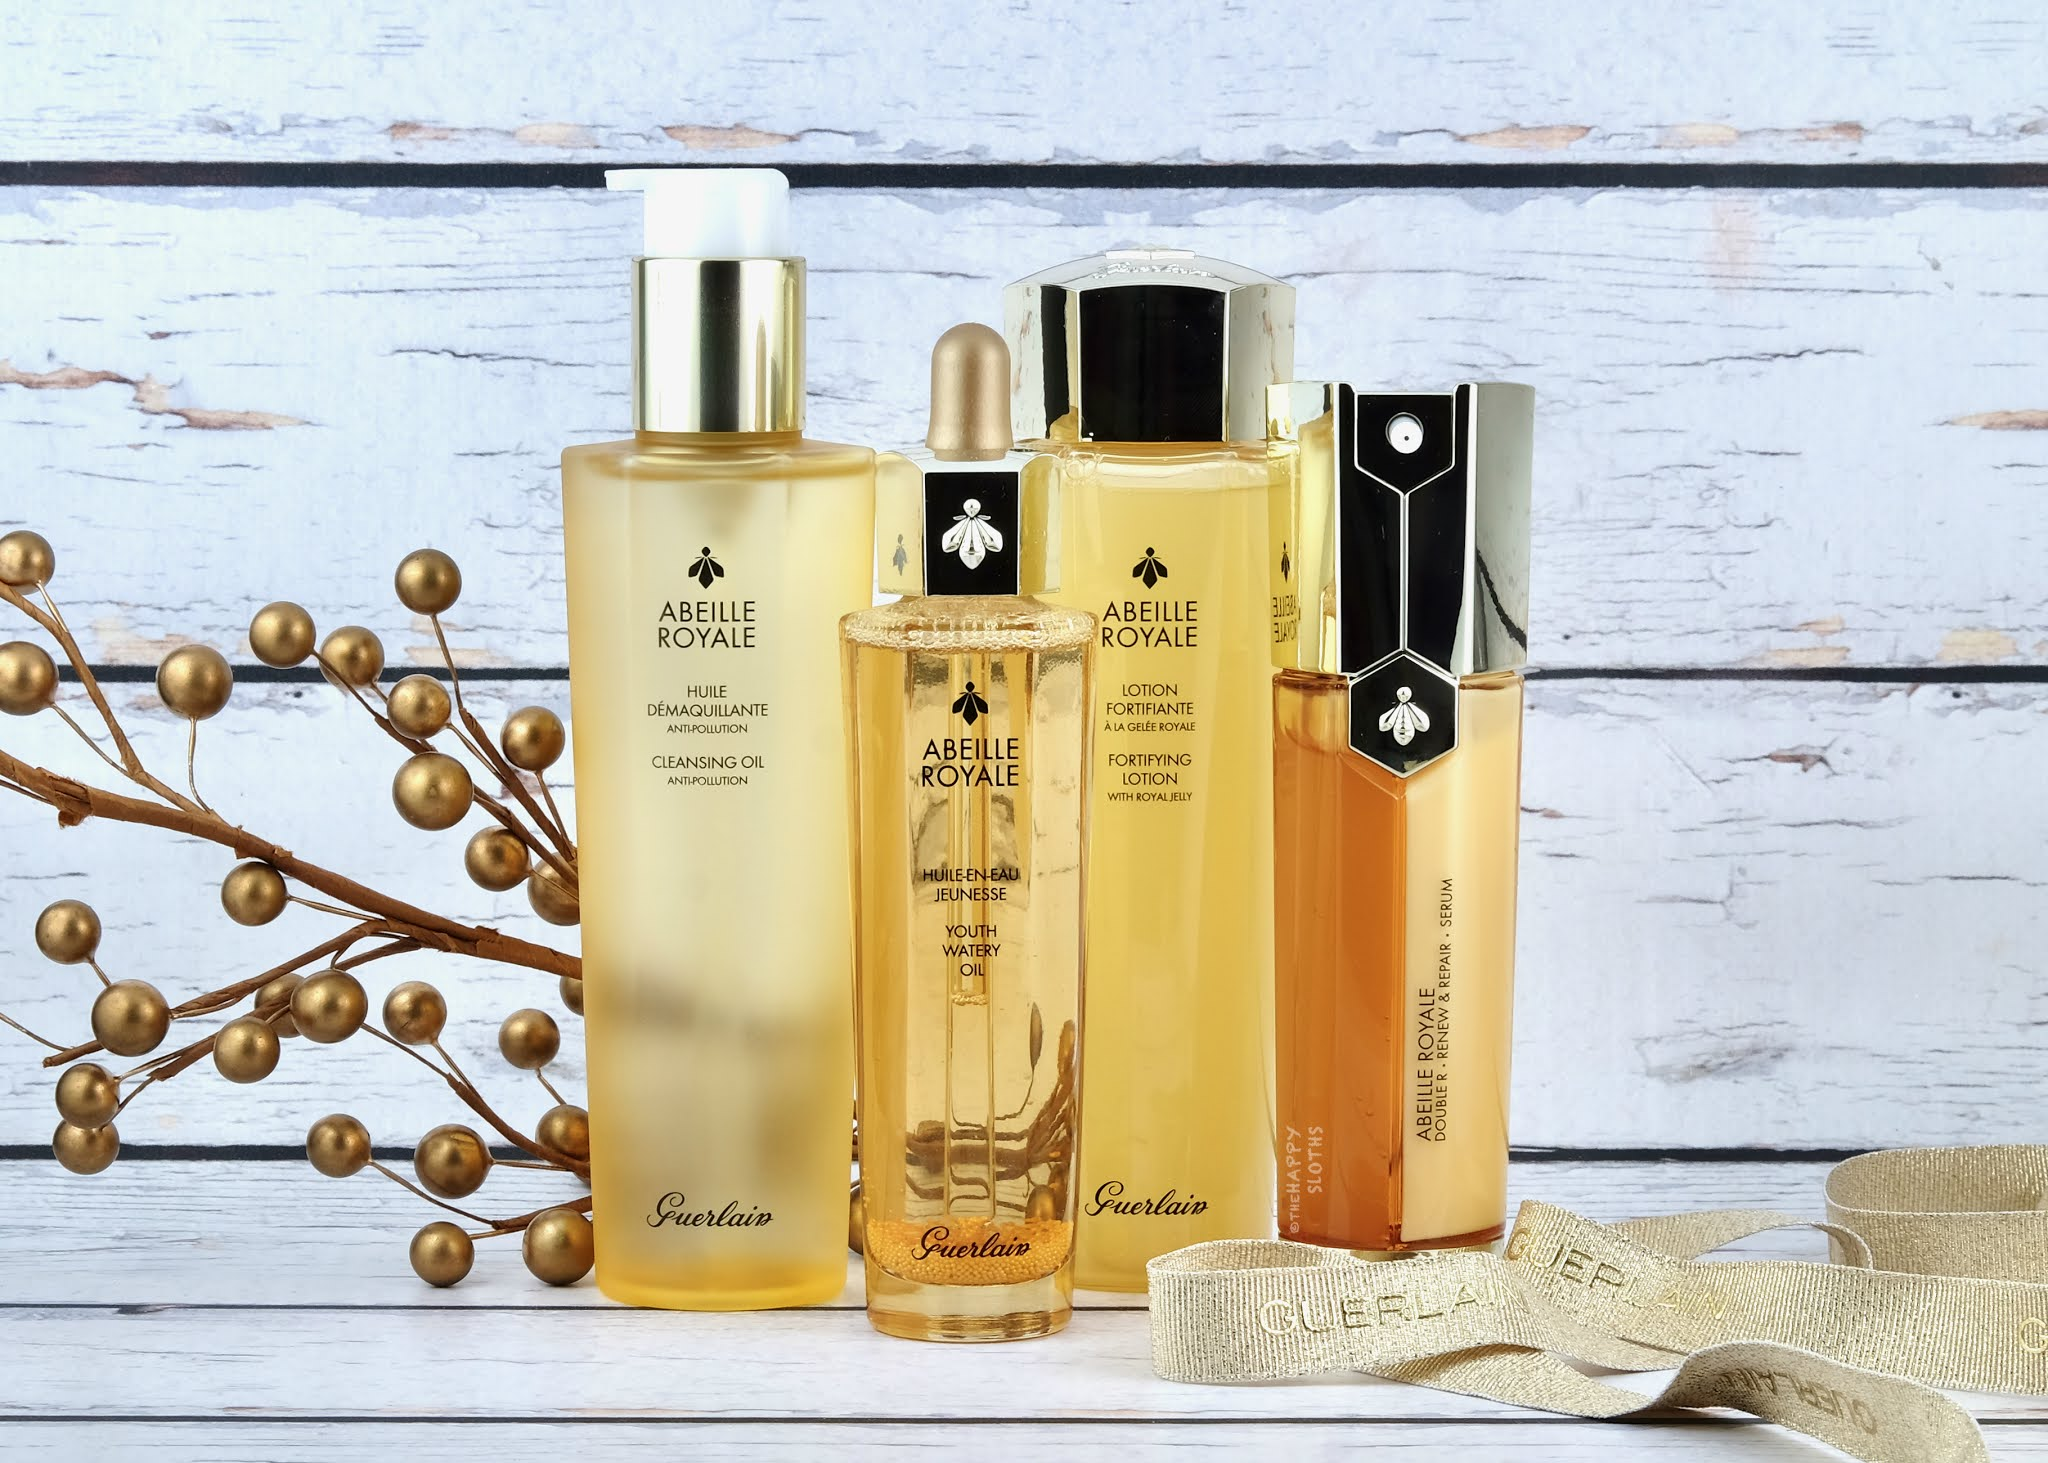 Guerlain | Abeille Royale Cleansing Oil, Fortifying Lotion, Youth Watery Oil & Double R Serum: Review